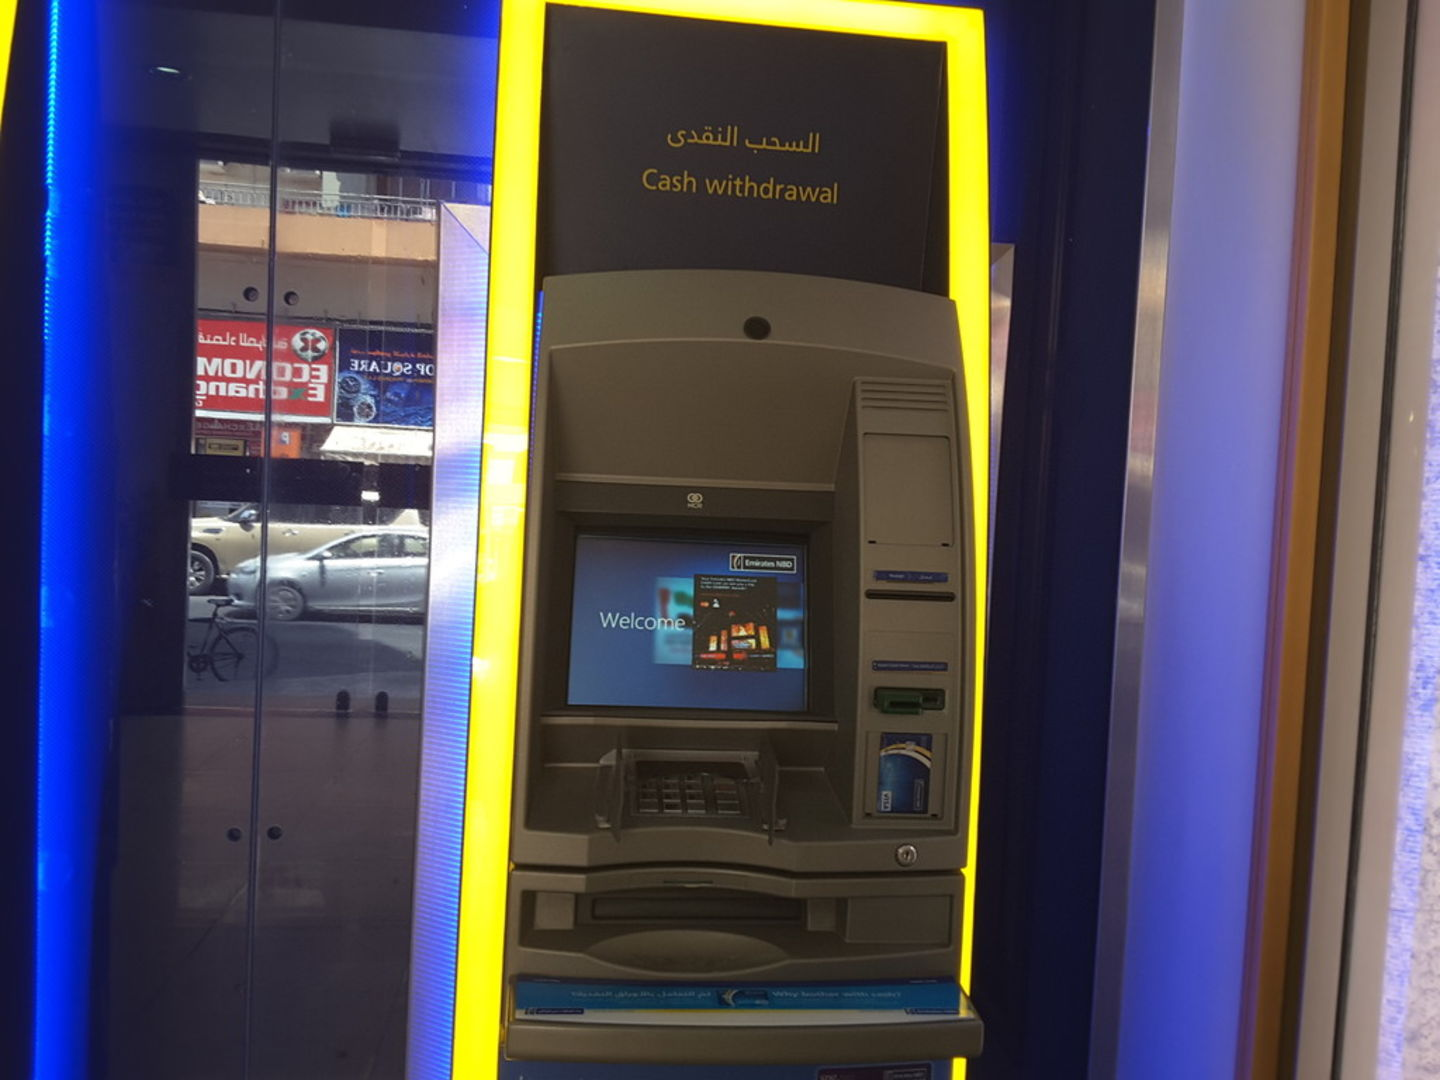 Emirates NBD Bank (ATM), (Banks & ATMs) in Meena Bazar (Al